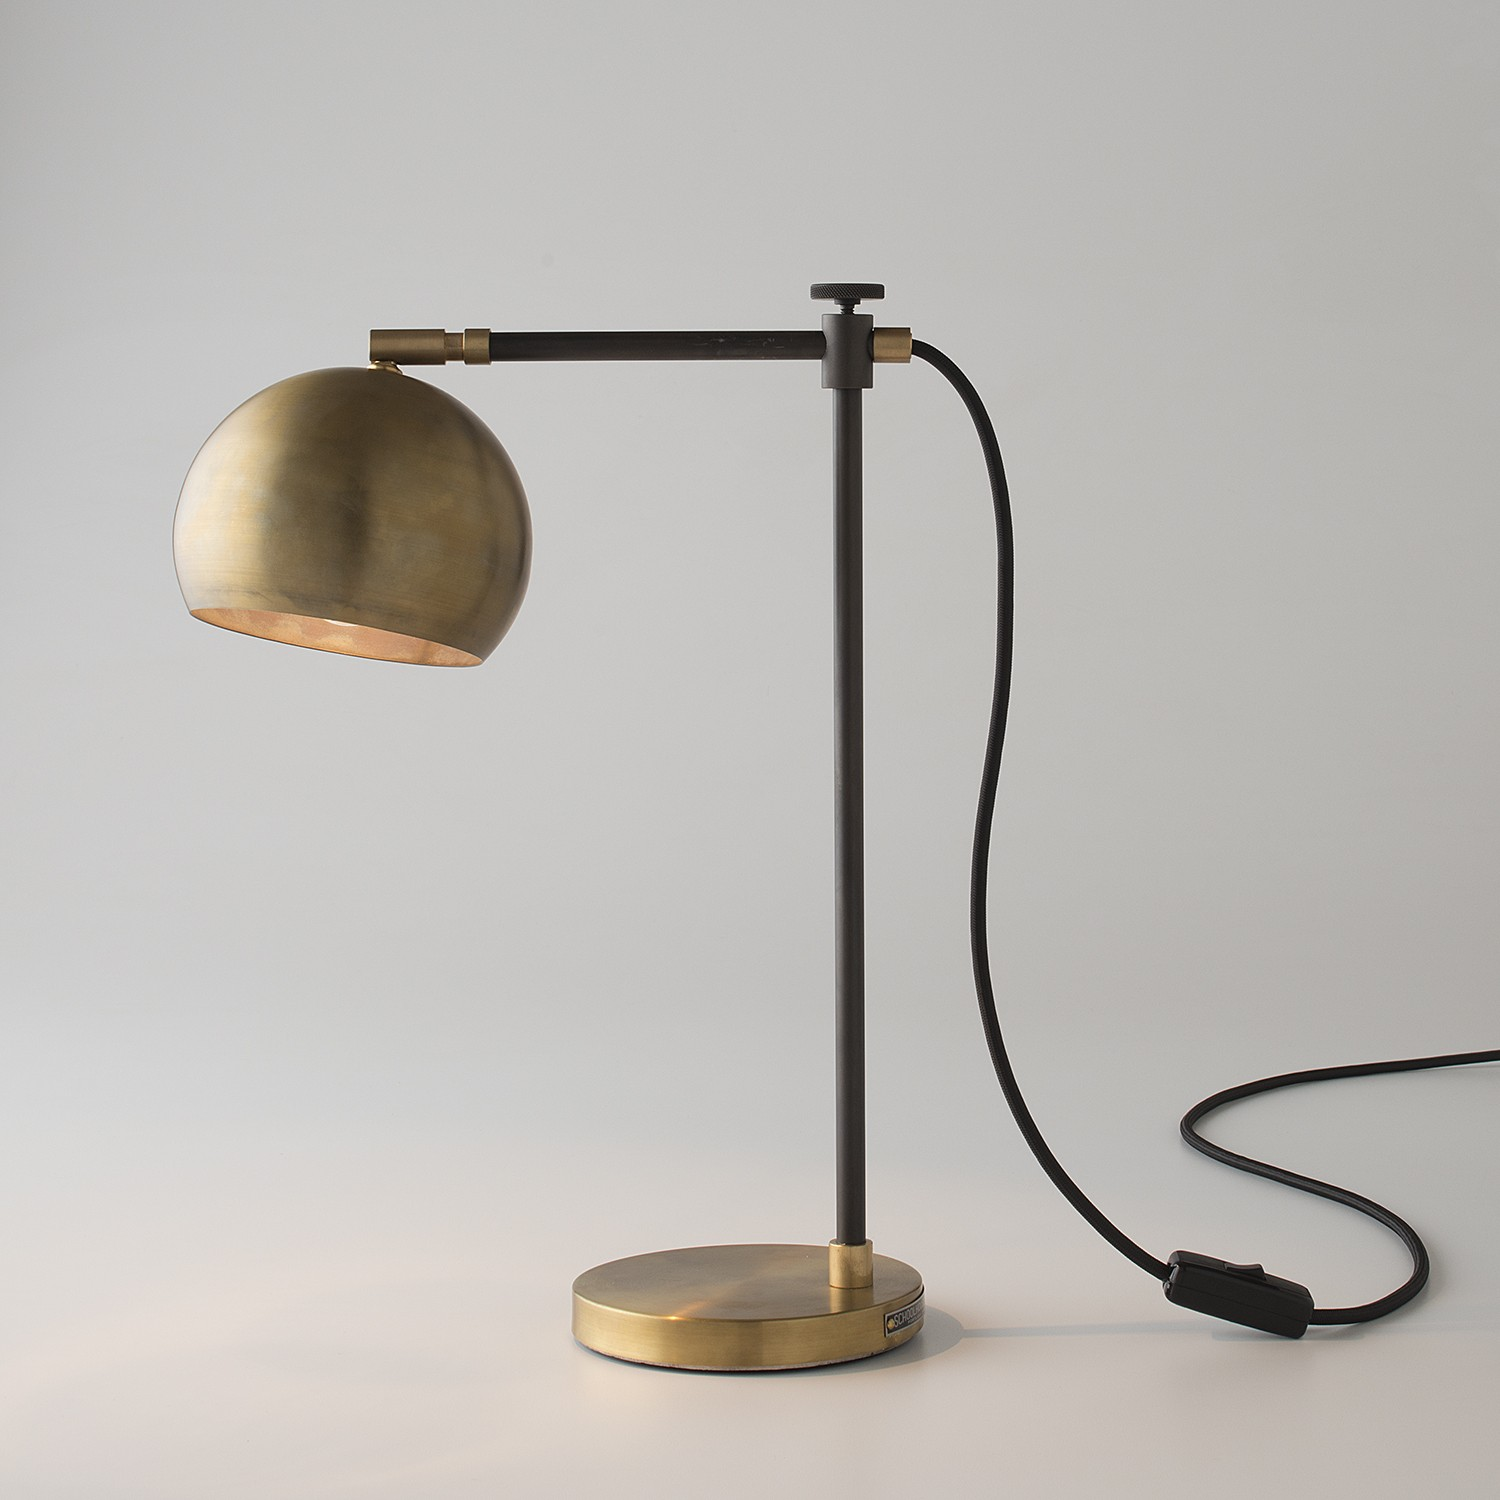 Image of: Brass Desk Lamp Models